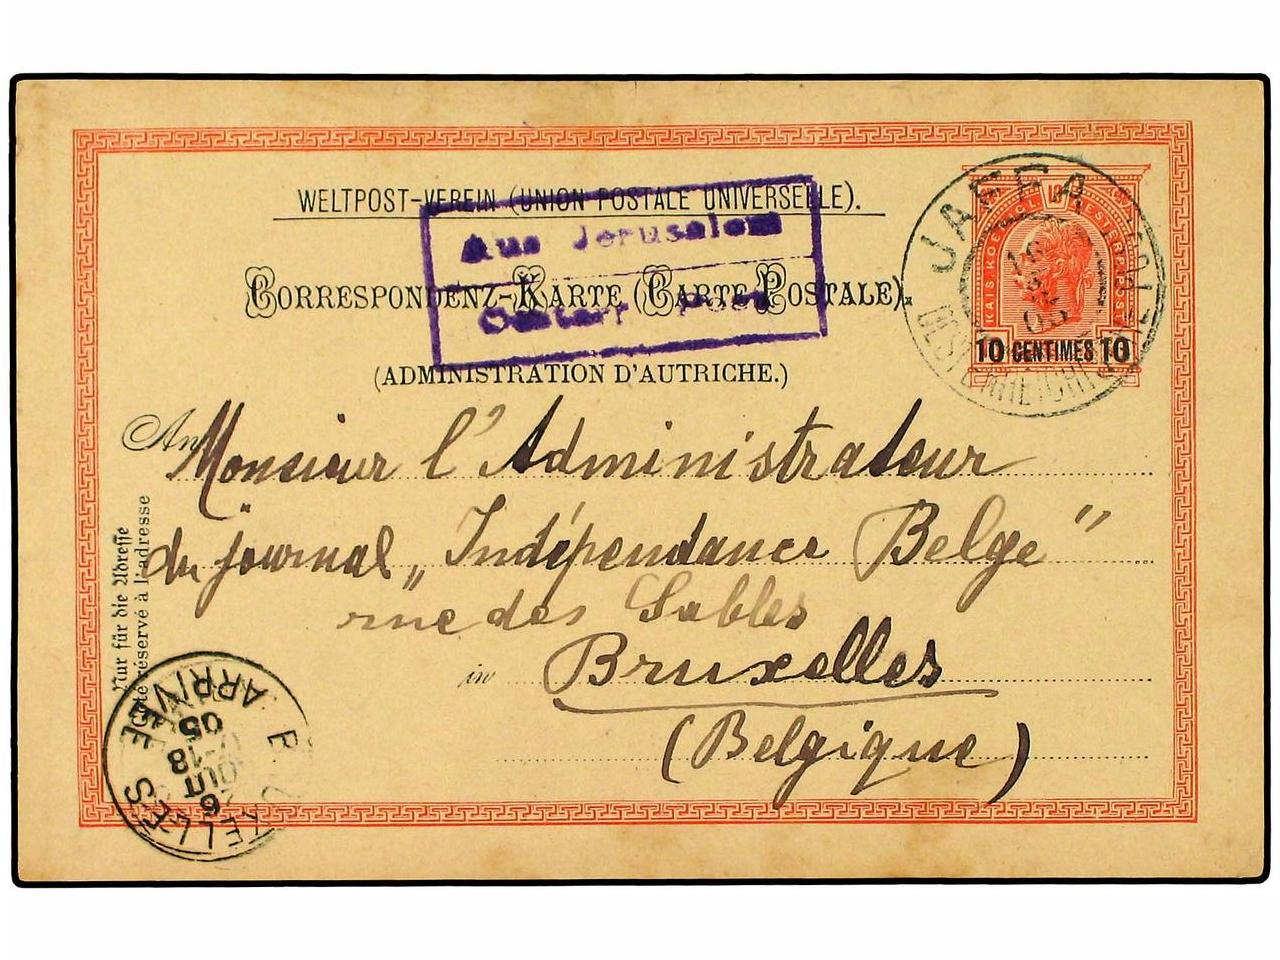 ✉ LEVANTE: CORREO AUSTRIACO. Ed. . 1905 (Aug 16). 10 c. on 1